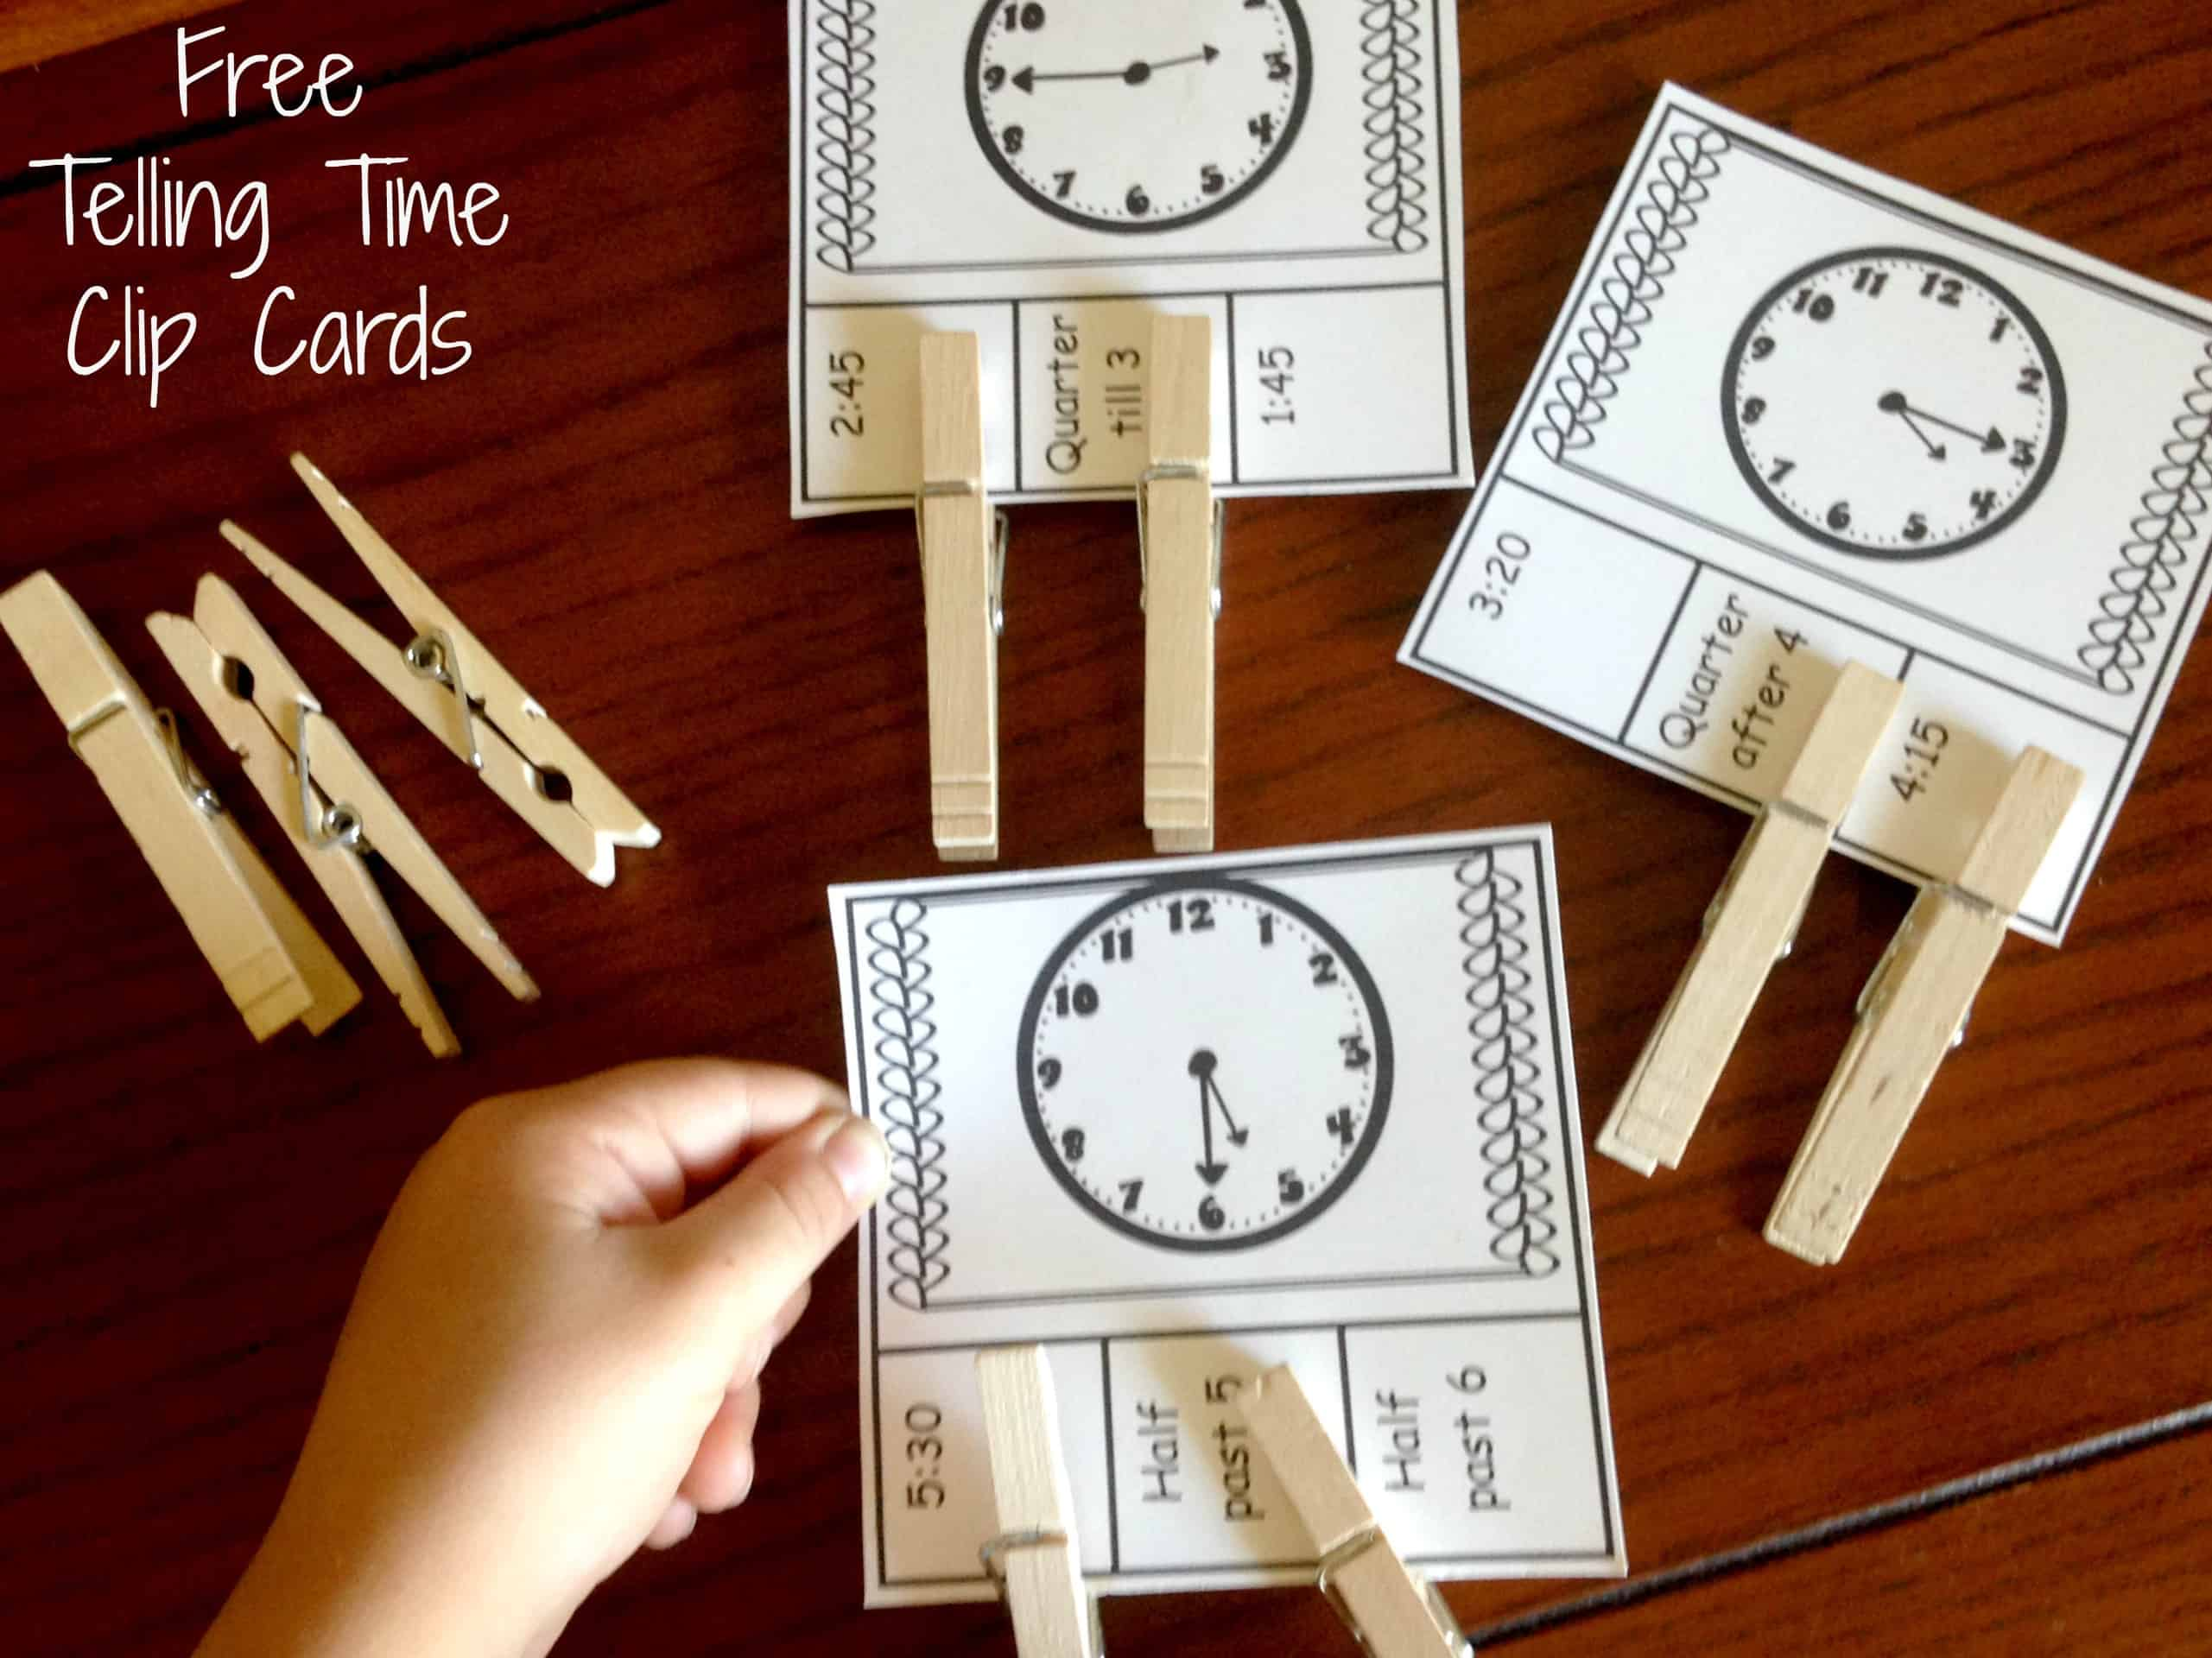 20 Telling Time Clip Cards For Clock Learning For Kids